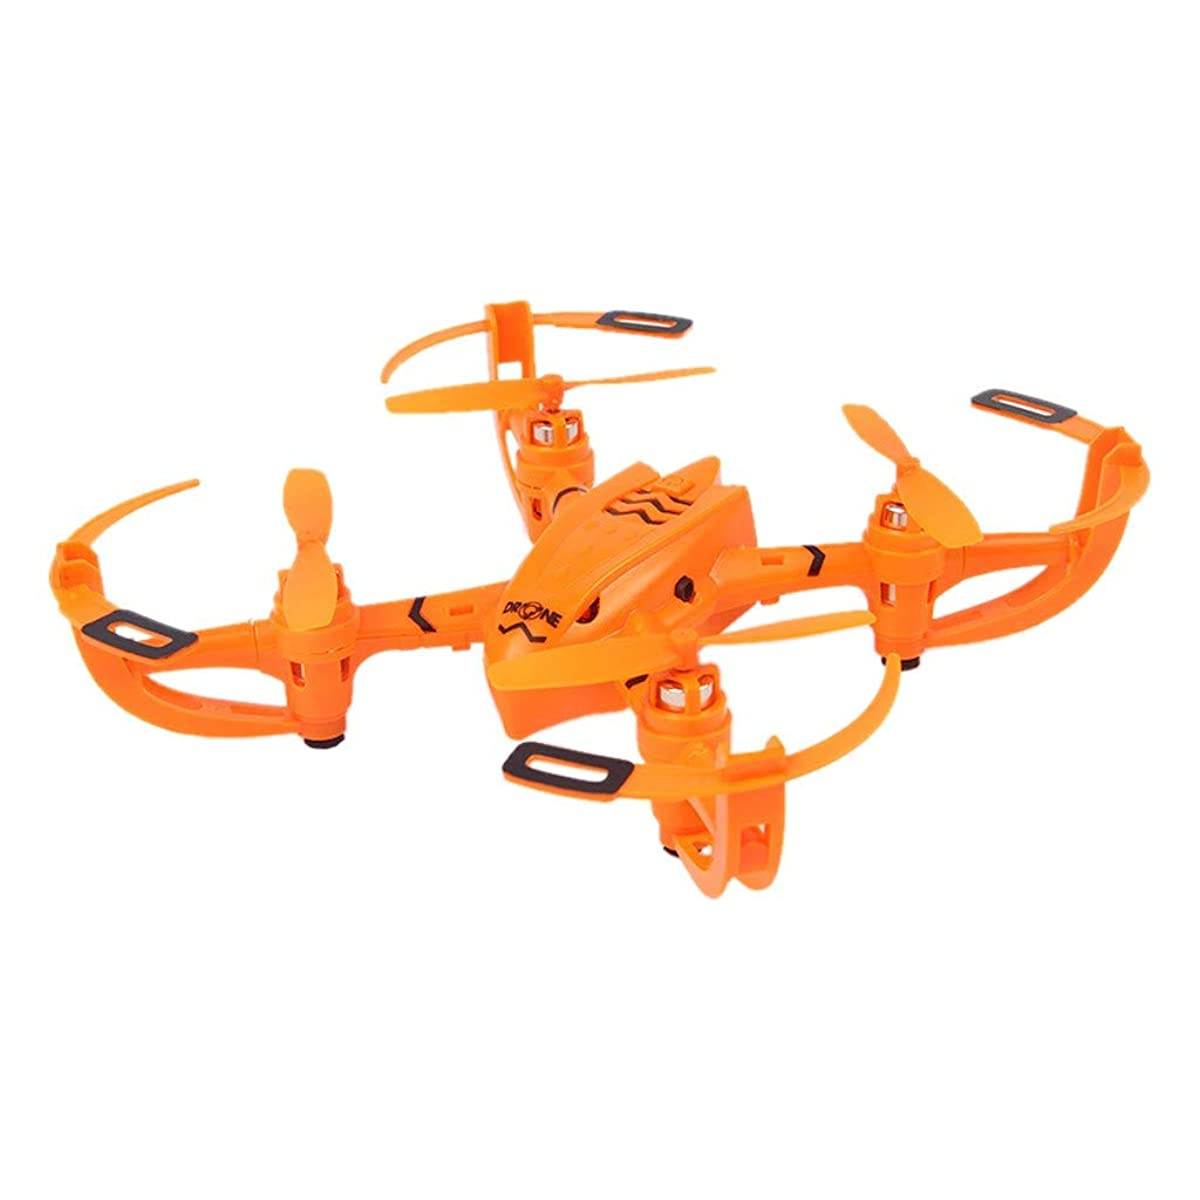 AKIMPE Drone GPS Return Home FPV RC Mini with Camera Live Video Battery 1080P HD Quadcopter Helicopter Wide-Angle WiFi Follow Me Altitude Hold Long Range Gyro Headless Mode for Kids Beginners